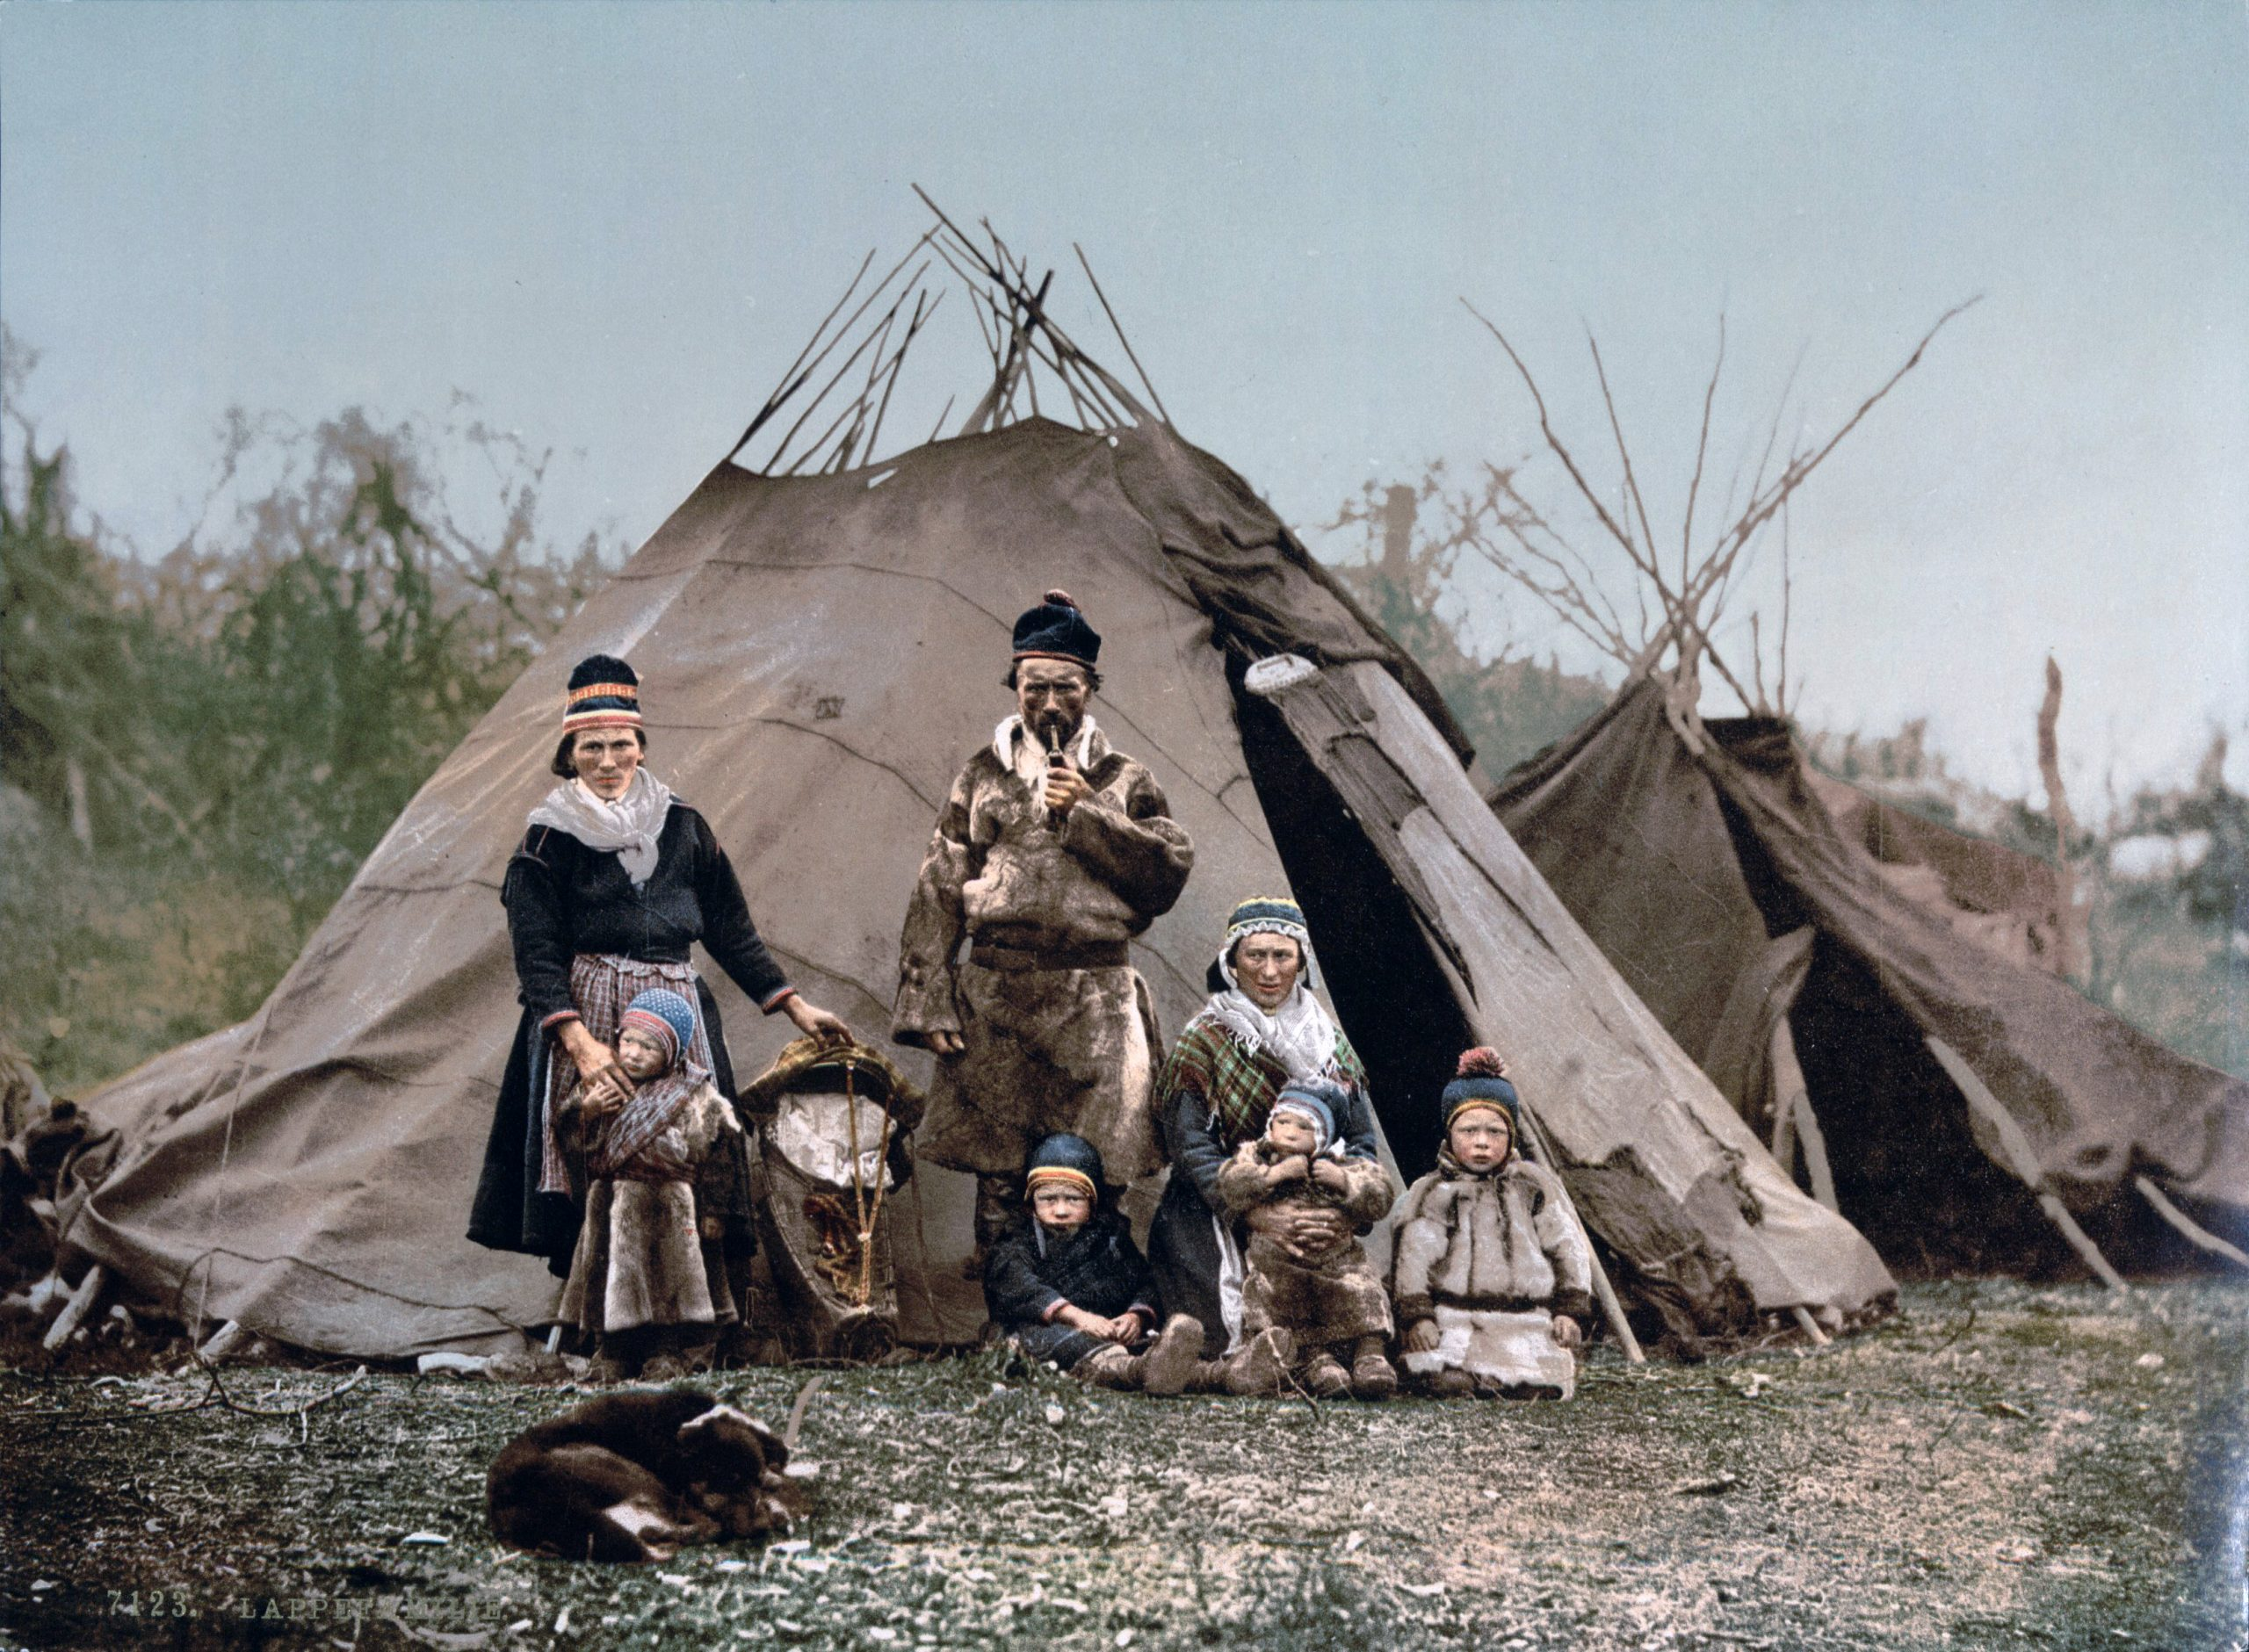 Sami people outside tipi home